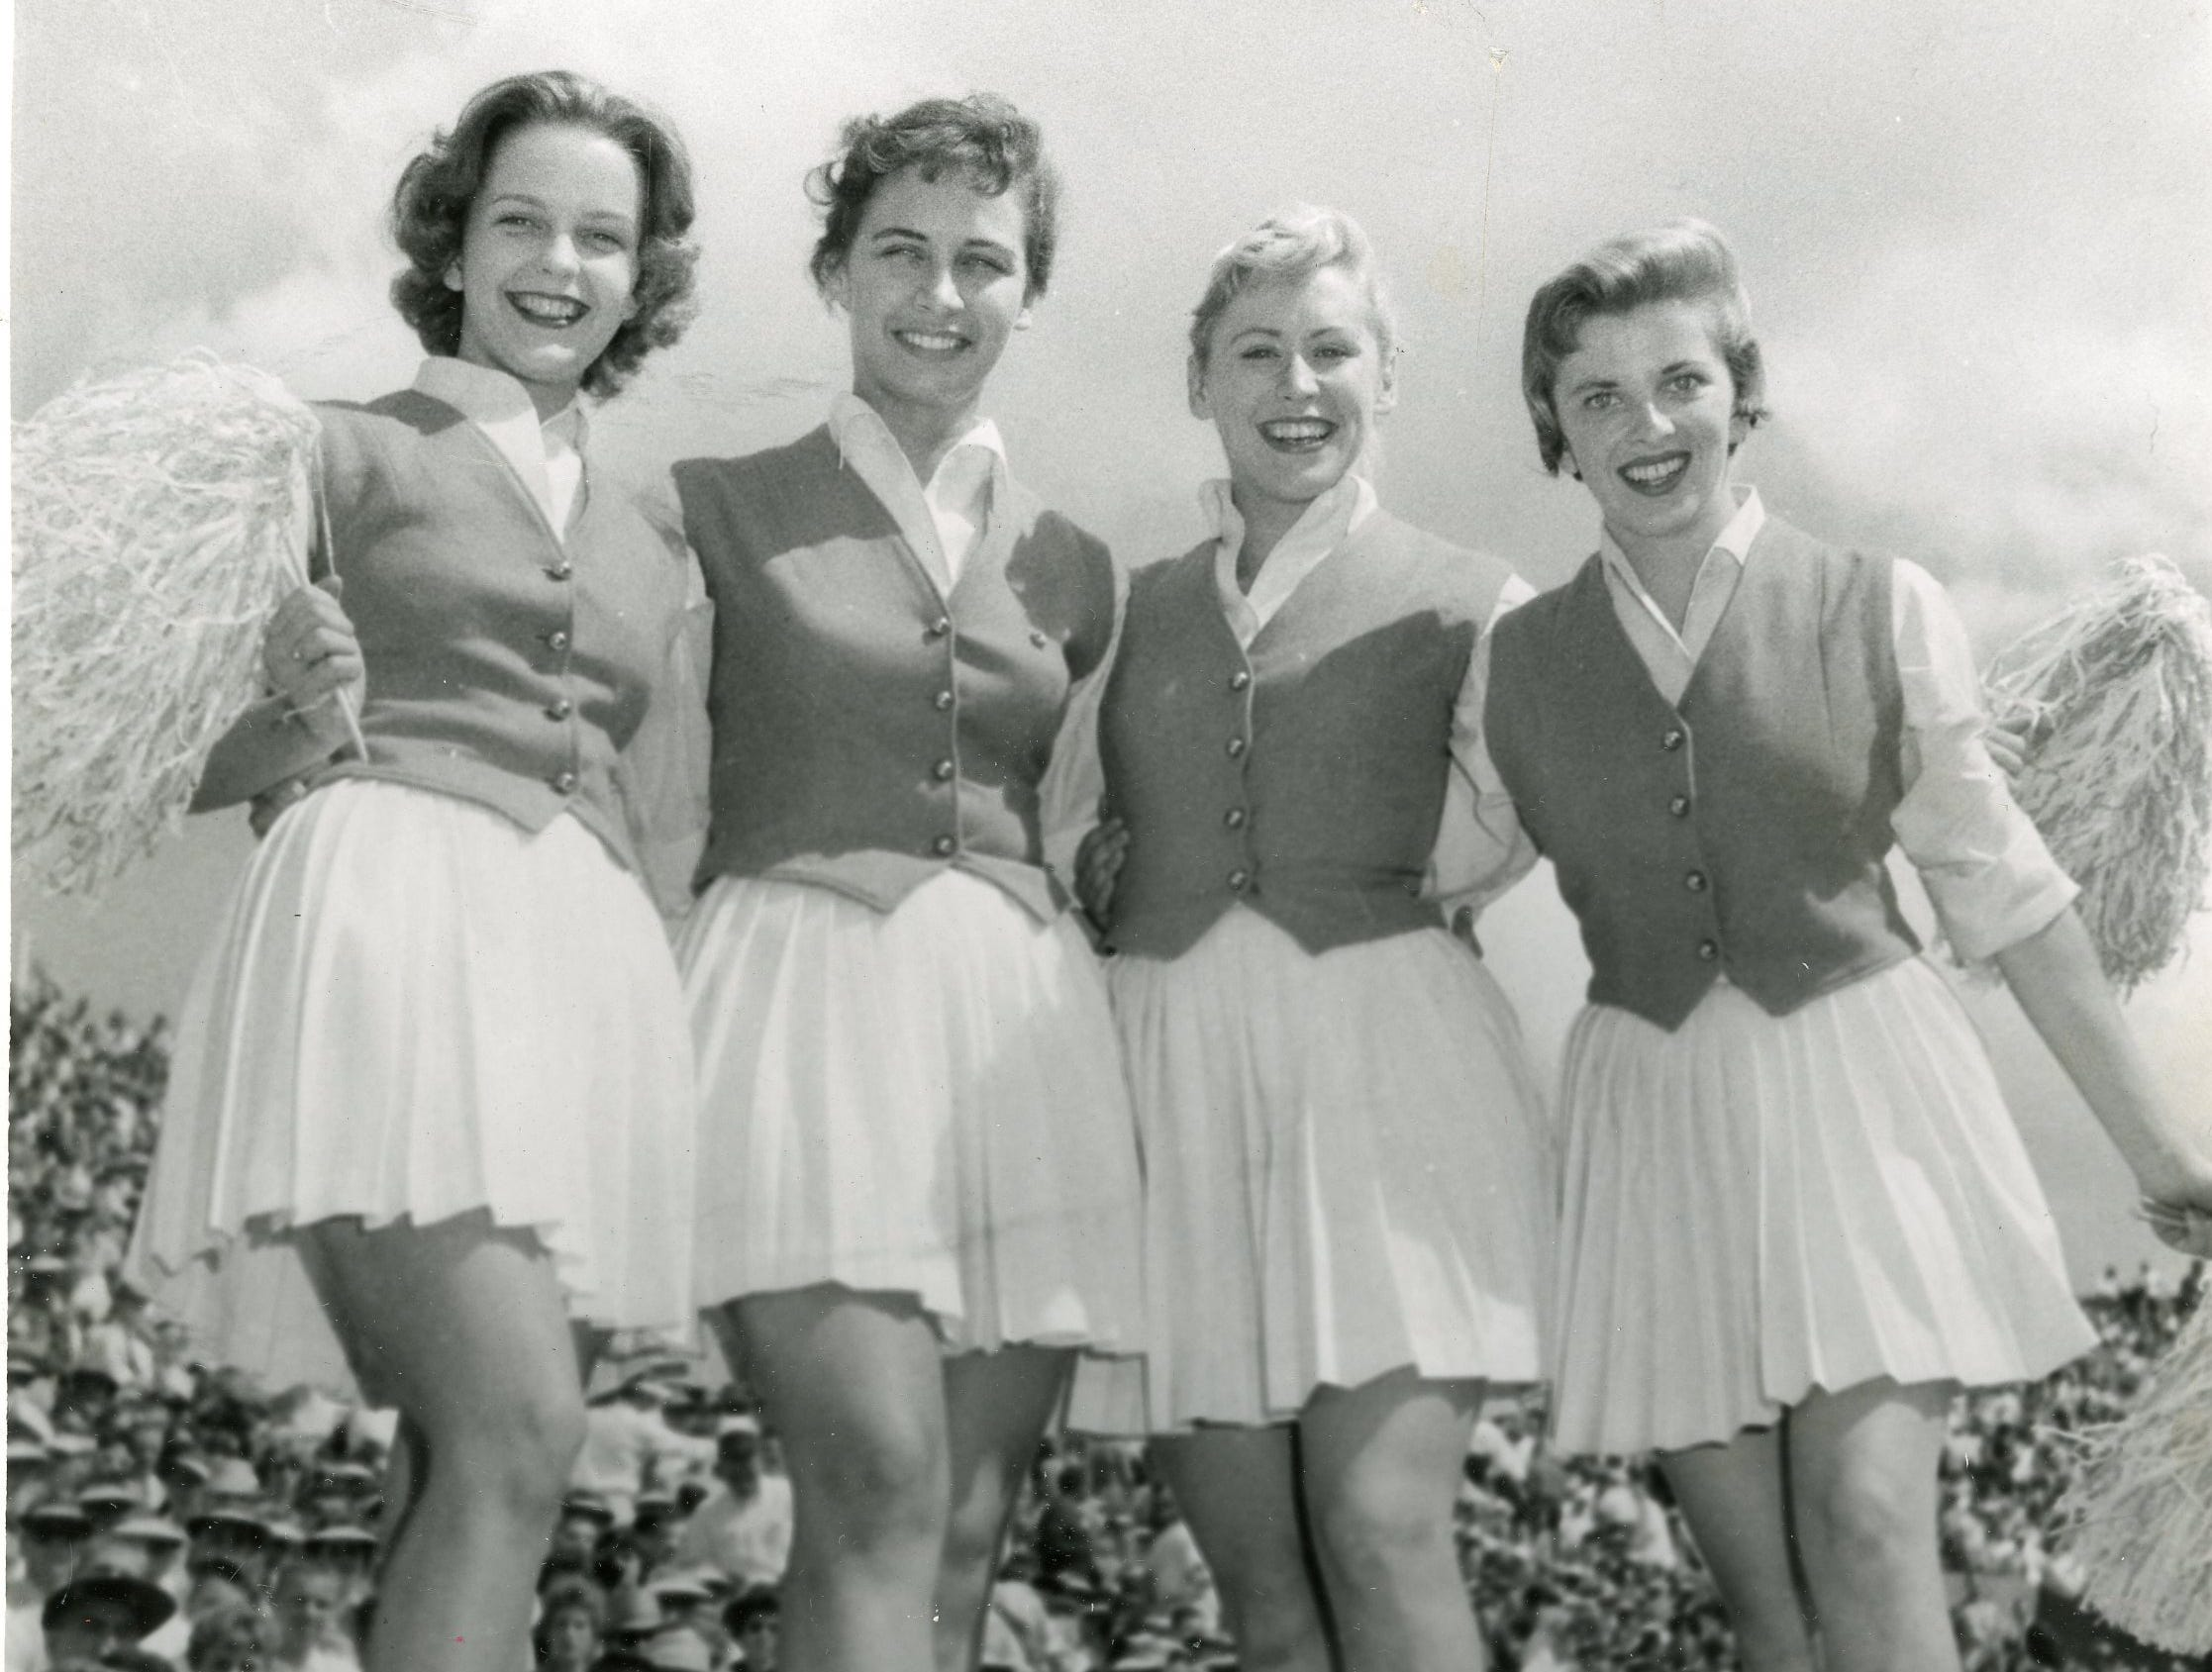 Cheerleaders on the 1959 UT squad included Linda Hendrifson, Gradye Lee Jaques, Patsy Coile and Joy Travis.